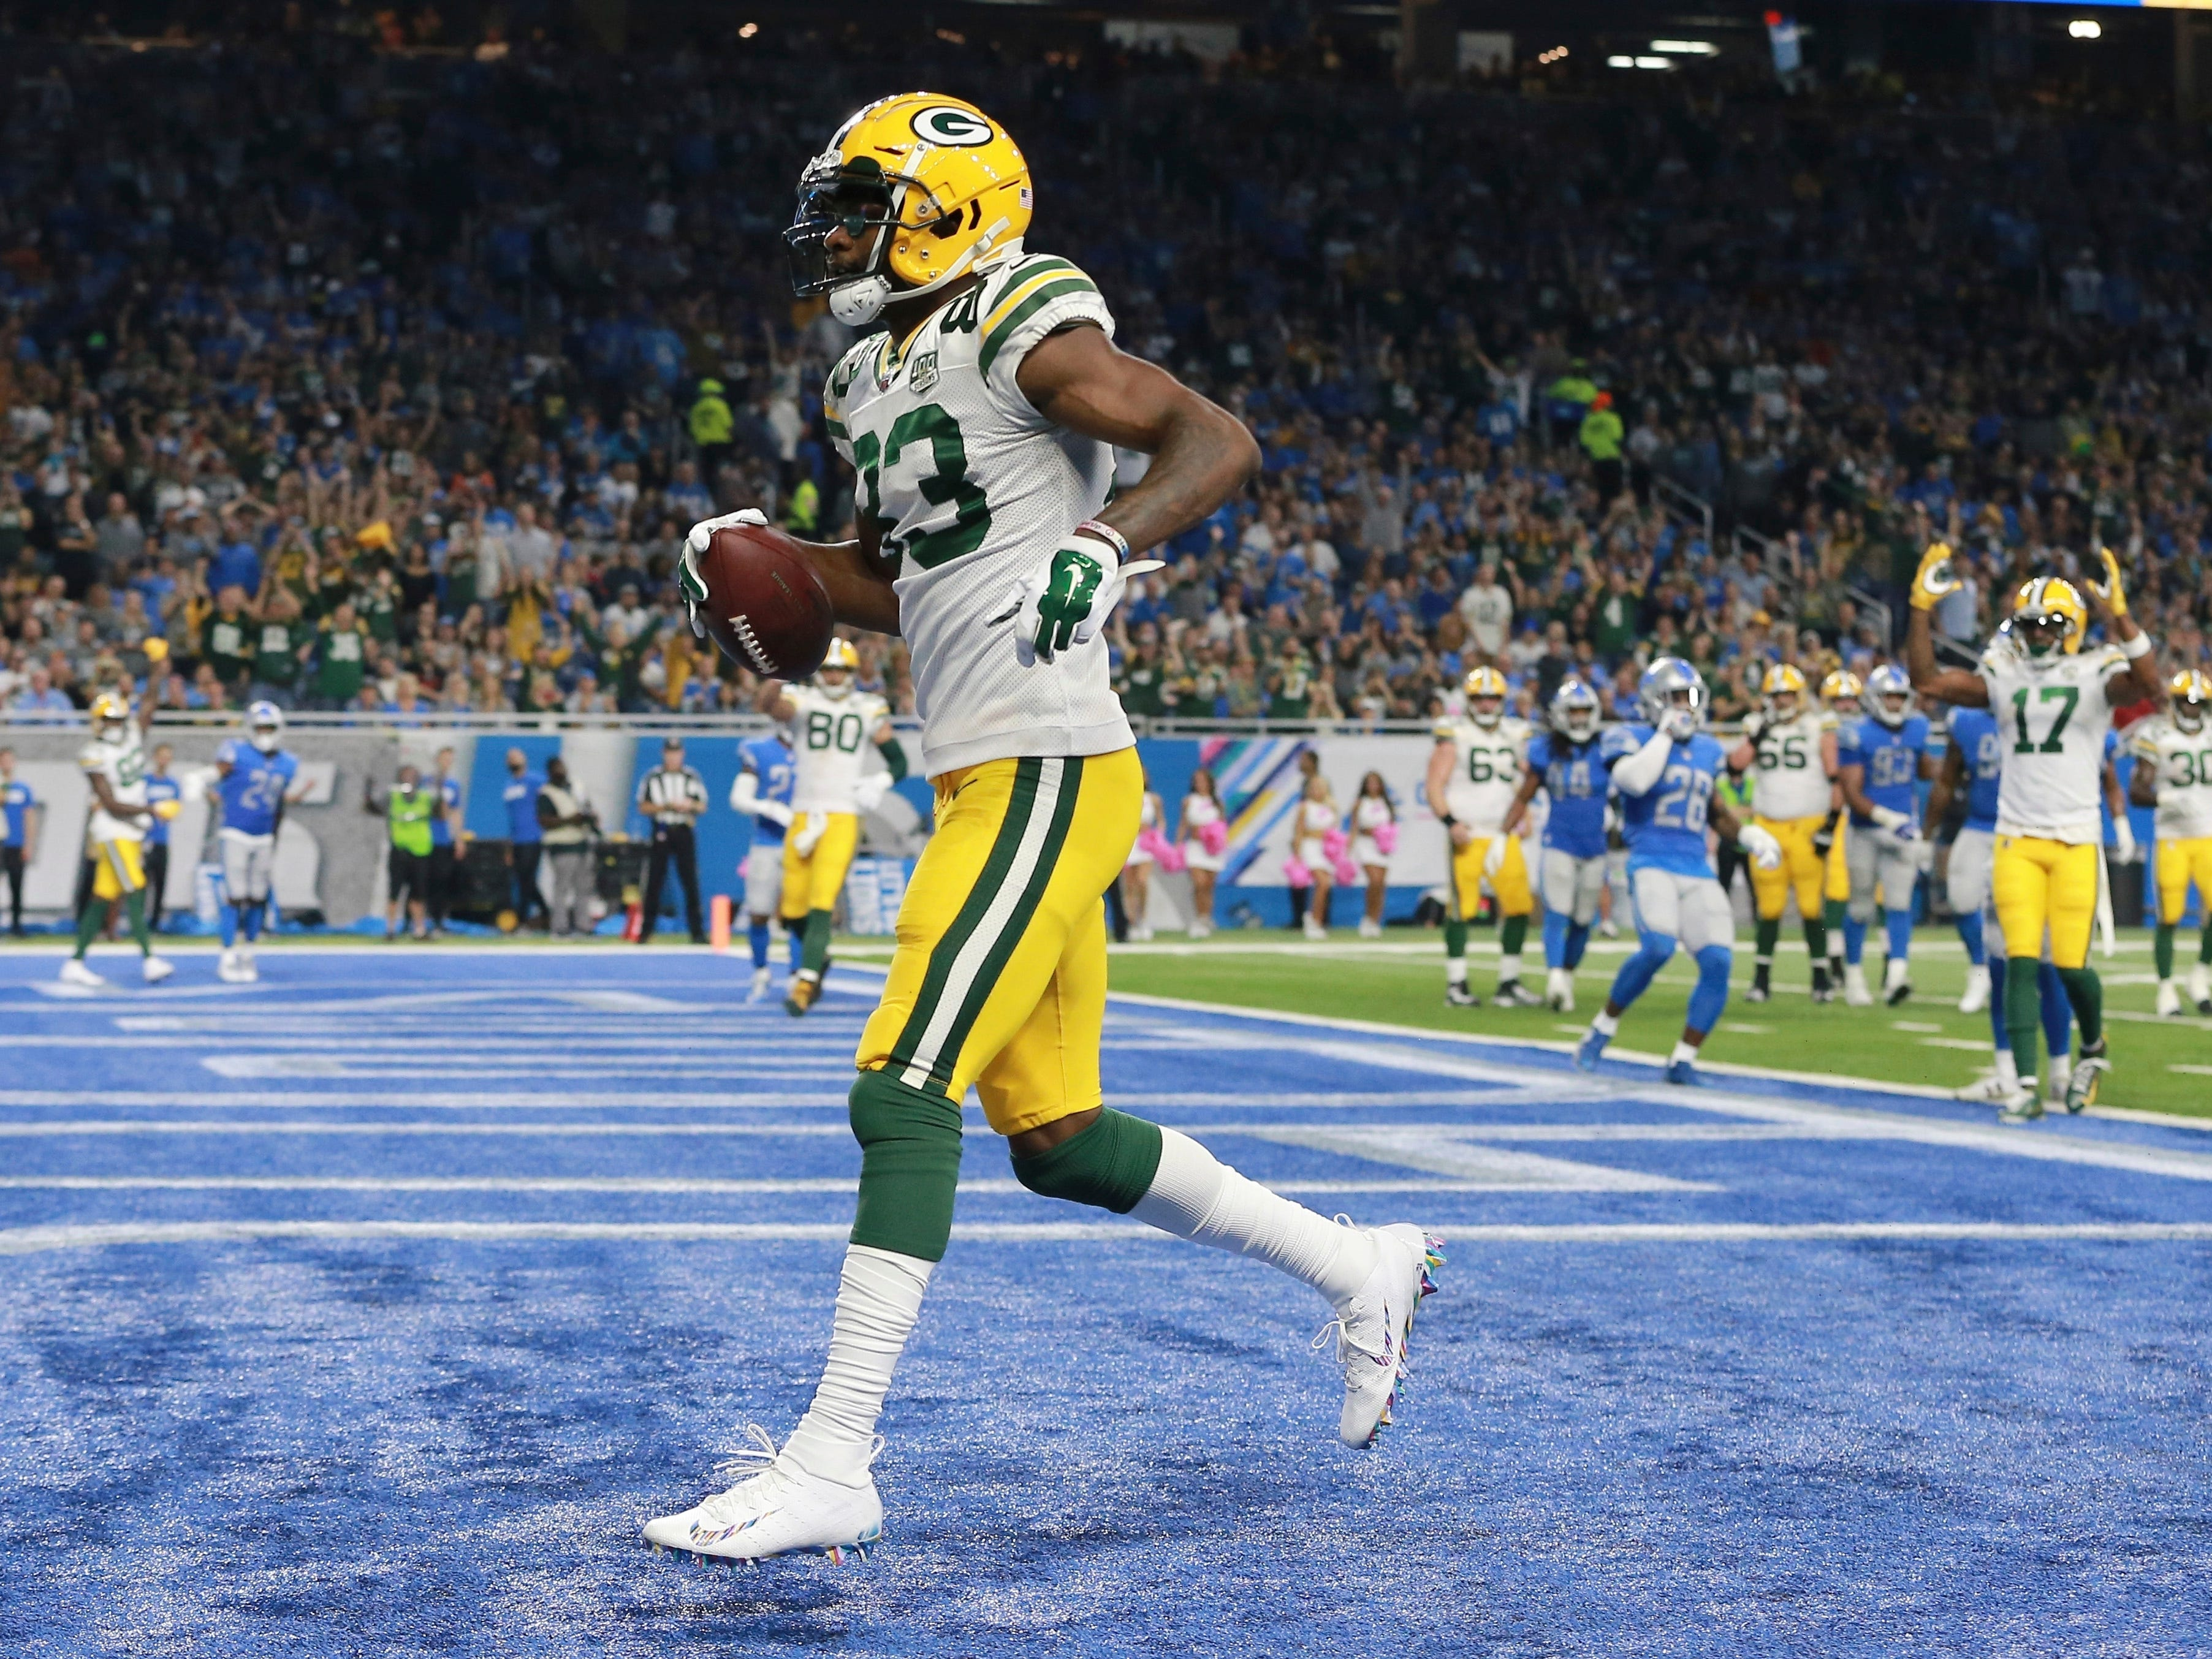 Green Bay Packers wide receiver Marquez Valdes-Scantling runs into the end zone for a touchdown during the second half of an NFL football game against the Detroit Lions, Sunday, Oct. 7, 2018, in Detroit.